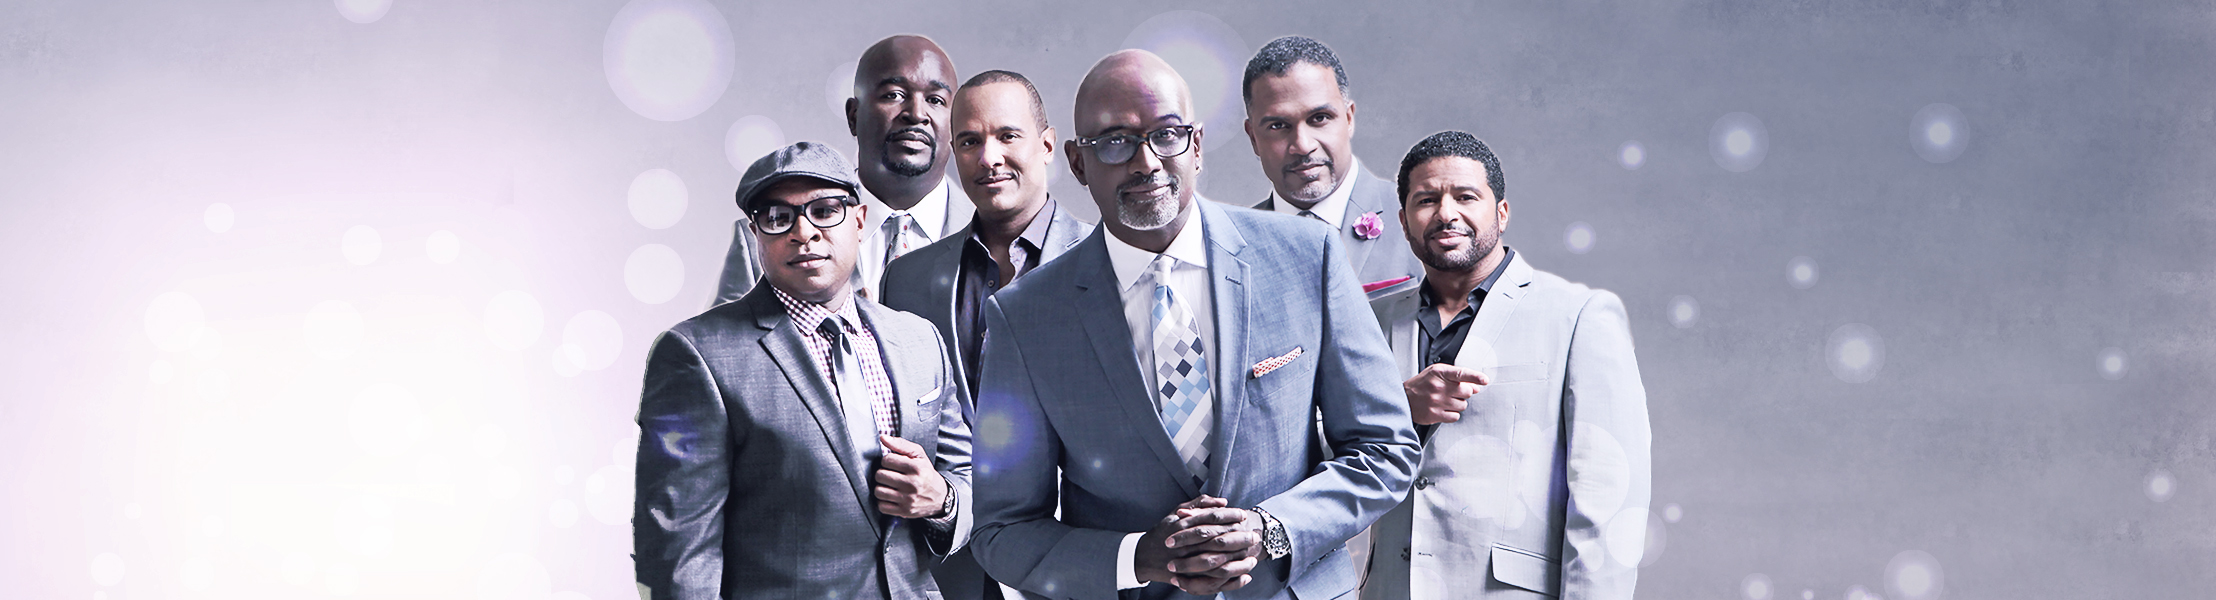 Take 6 - The Carver Community Cultural Center